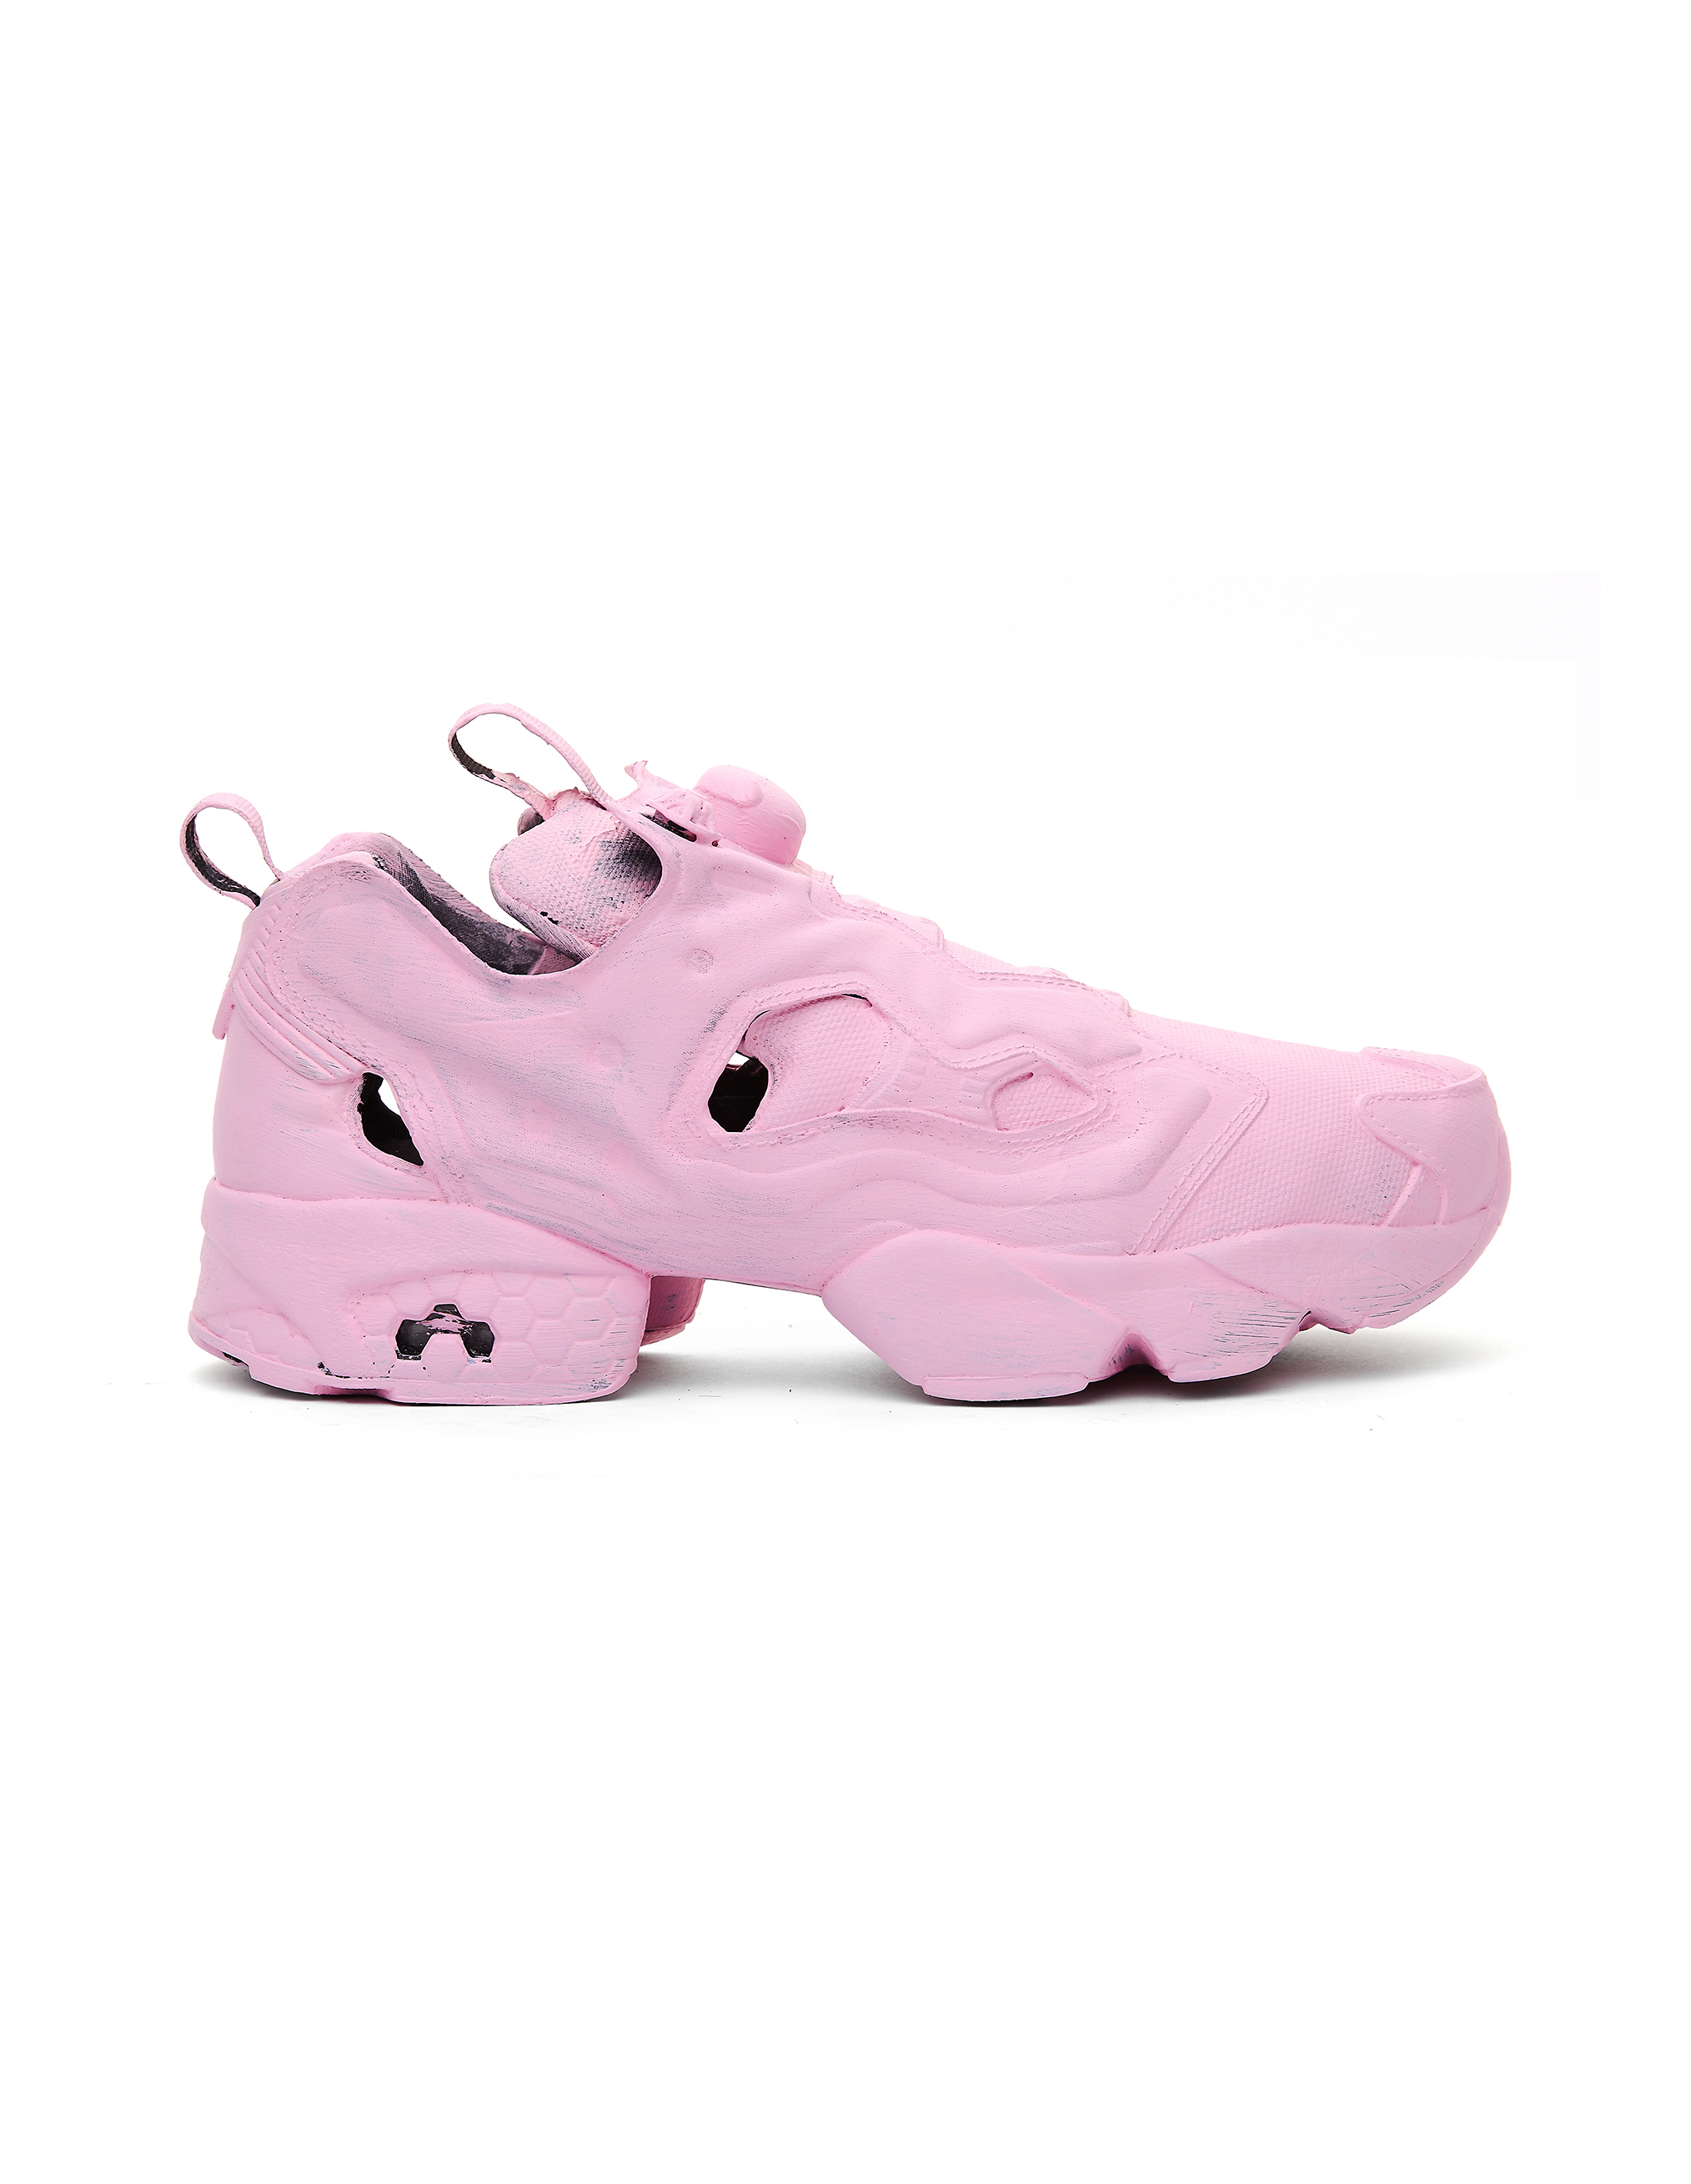 Vetements Pink Reebok Instapump Sneakers